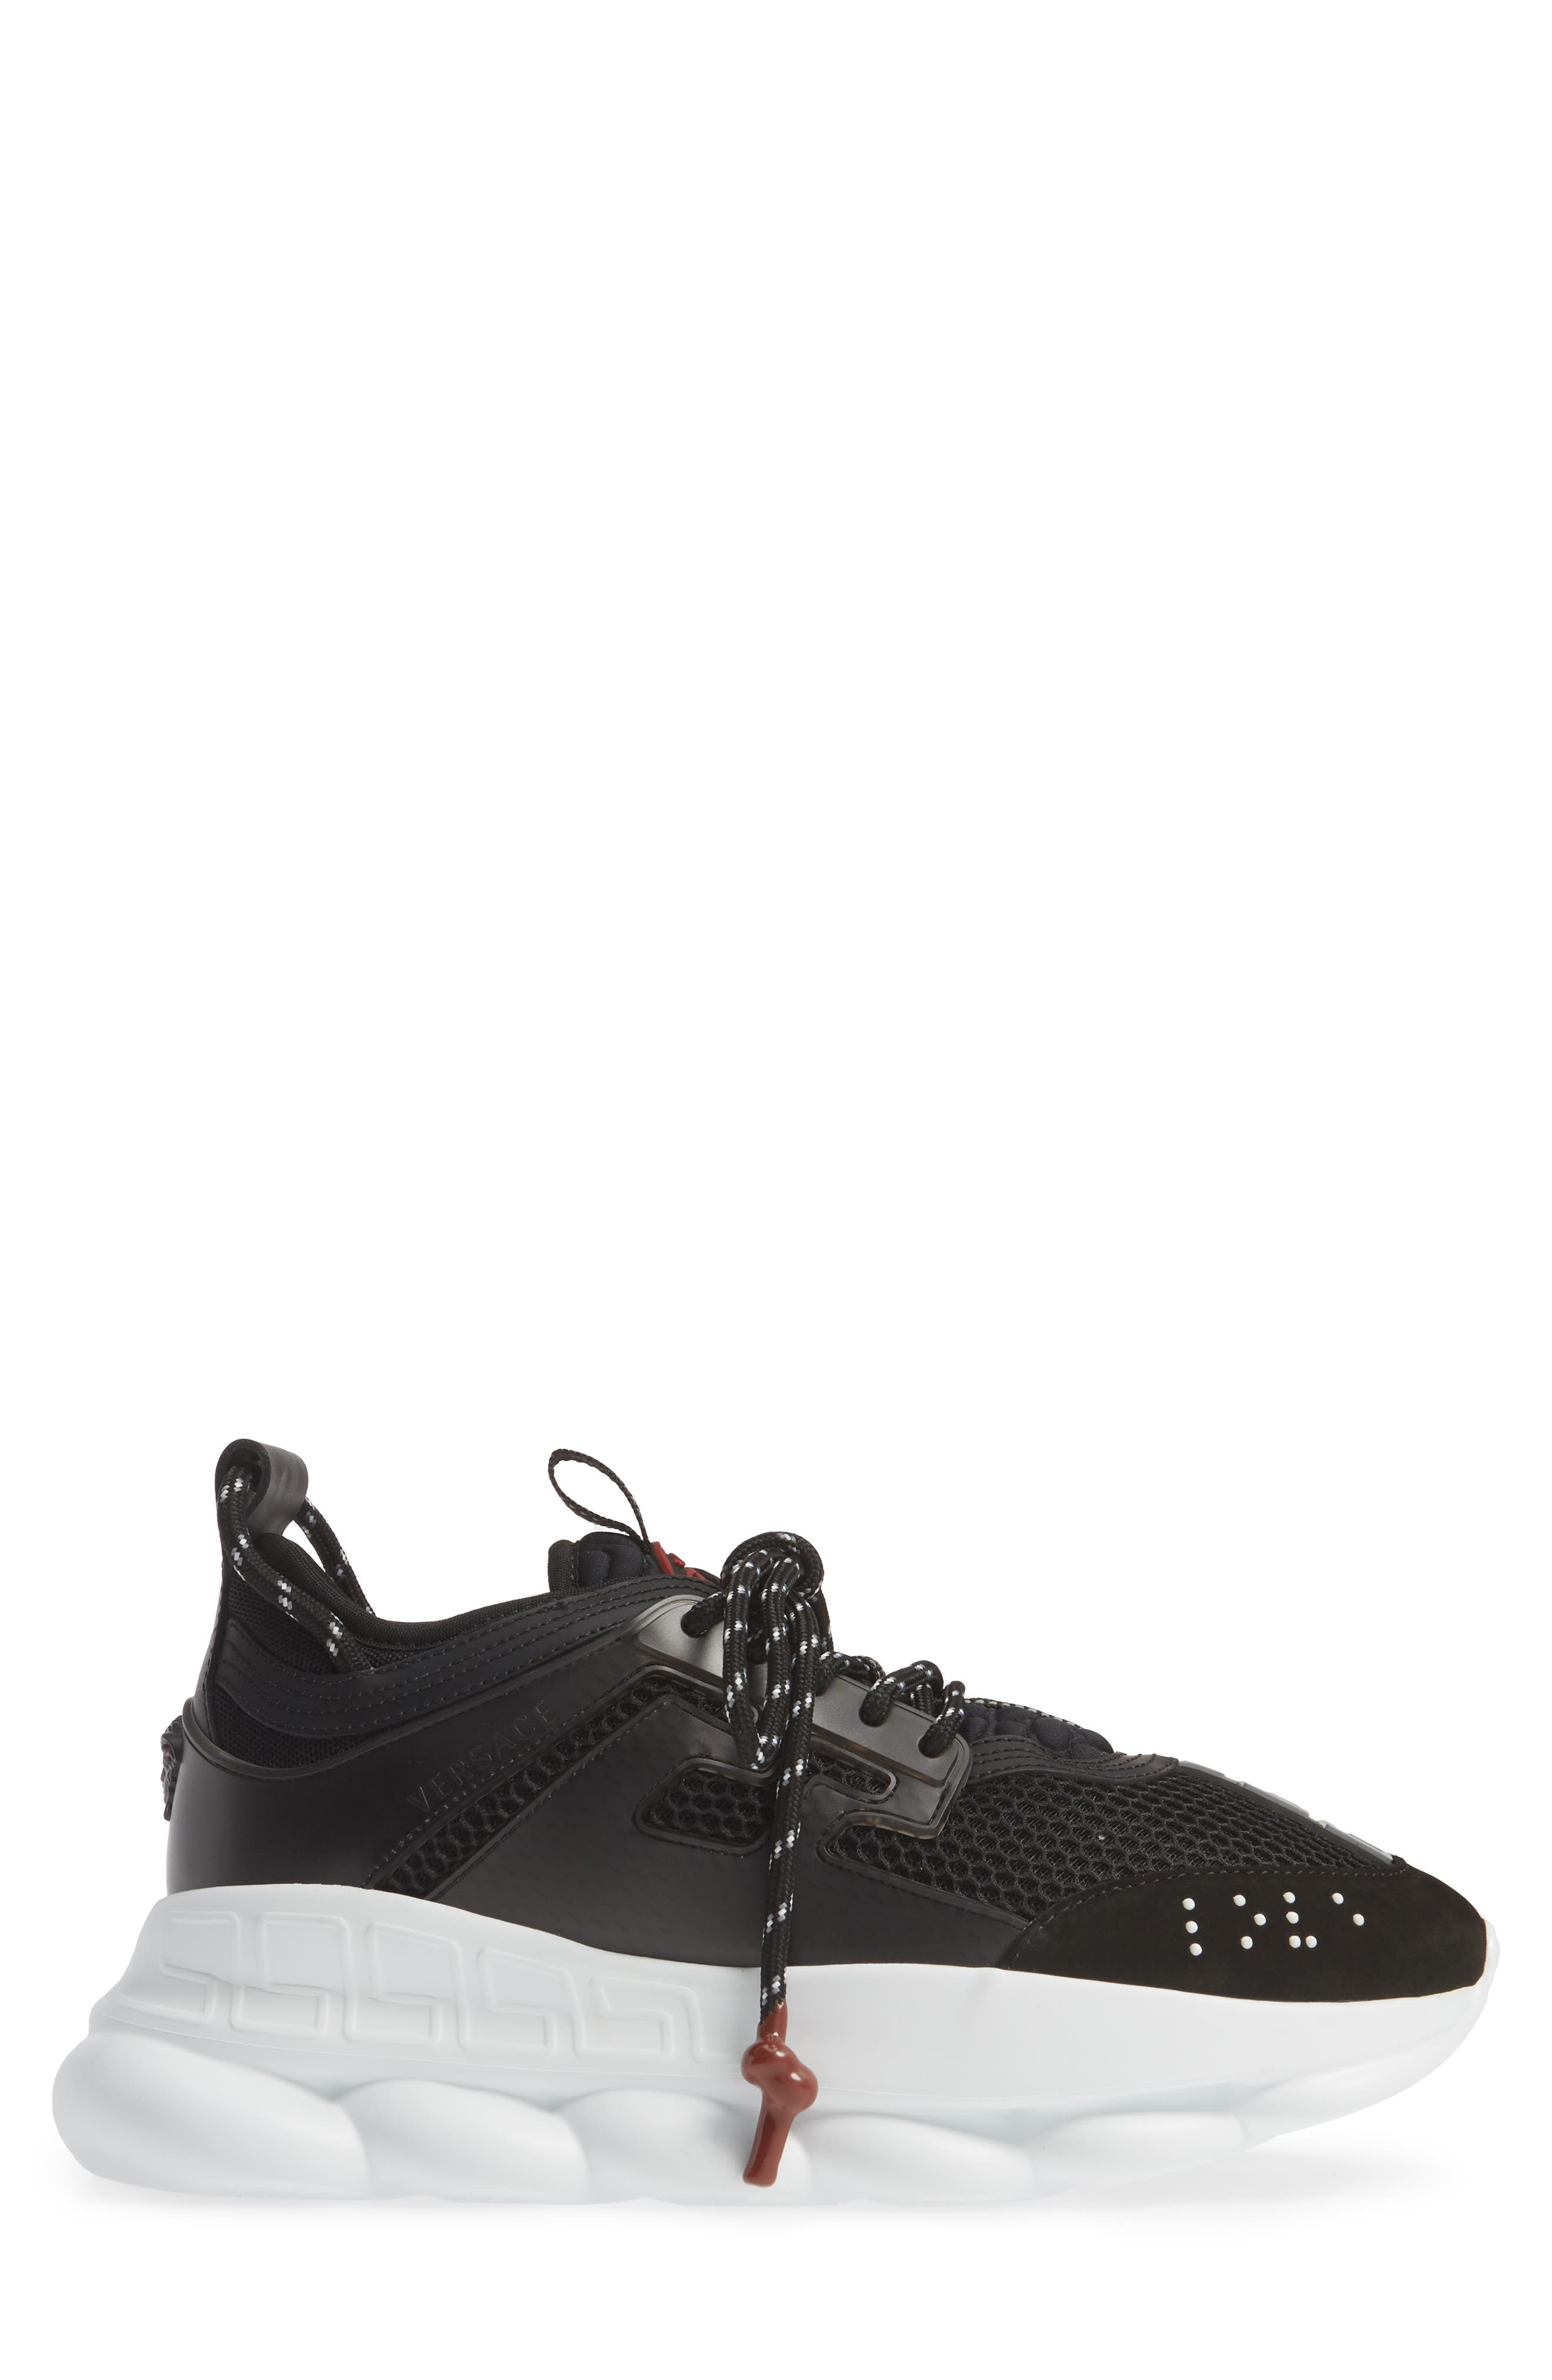 VERSACE FIRST LINE, Versace Chain Reaction Sneaker, Alternate thumbnail 3, color, BLACK/ GREY